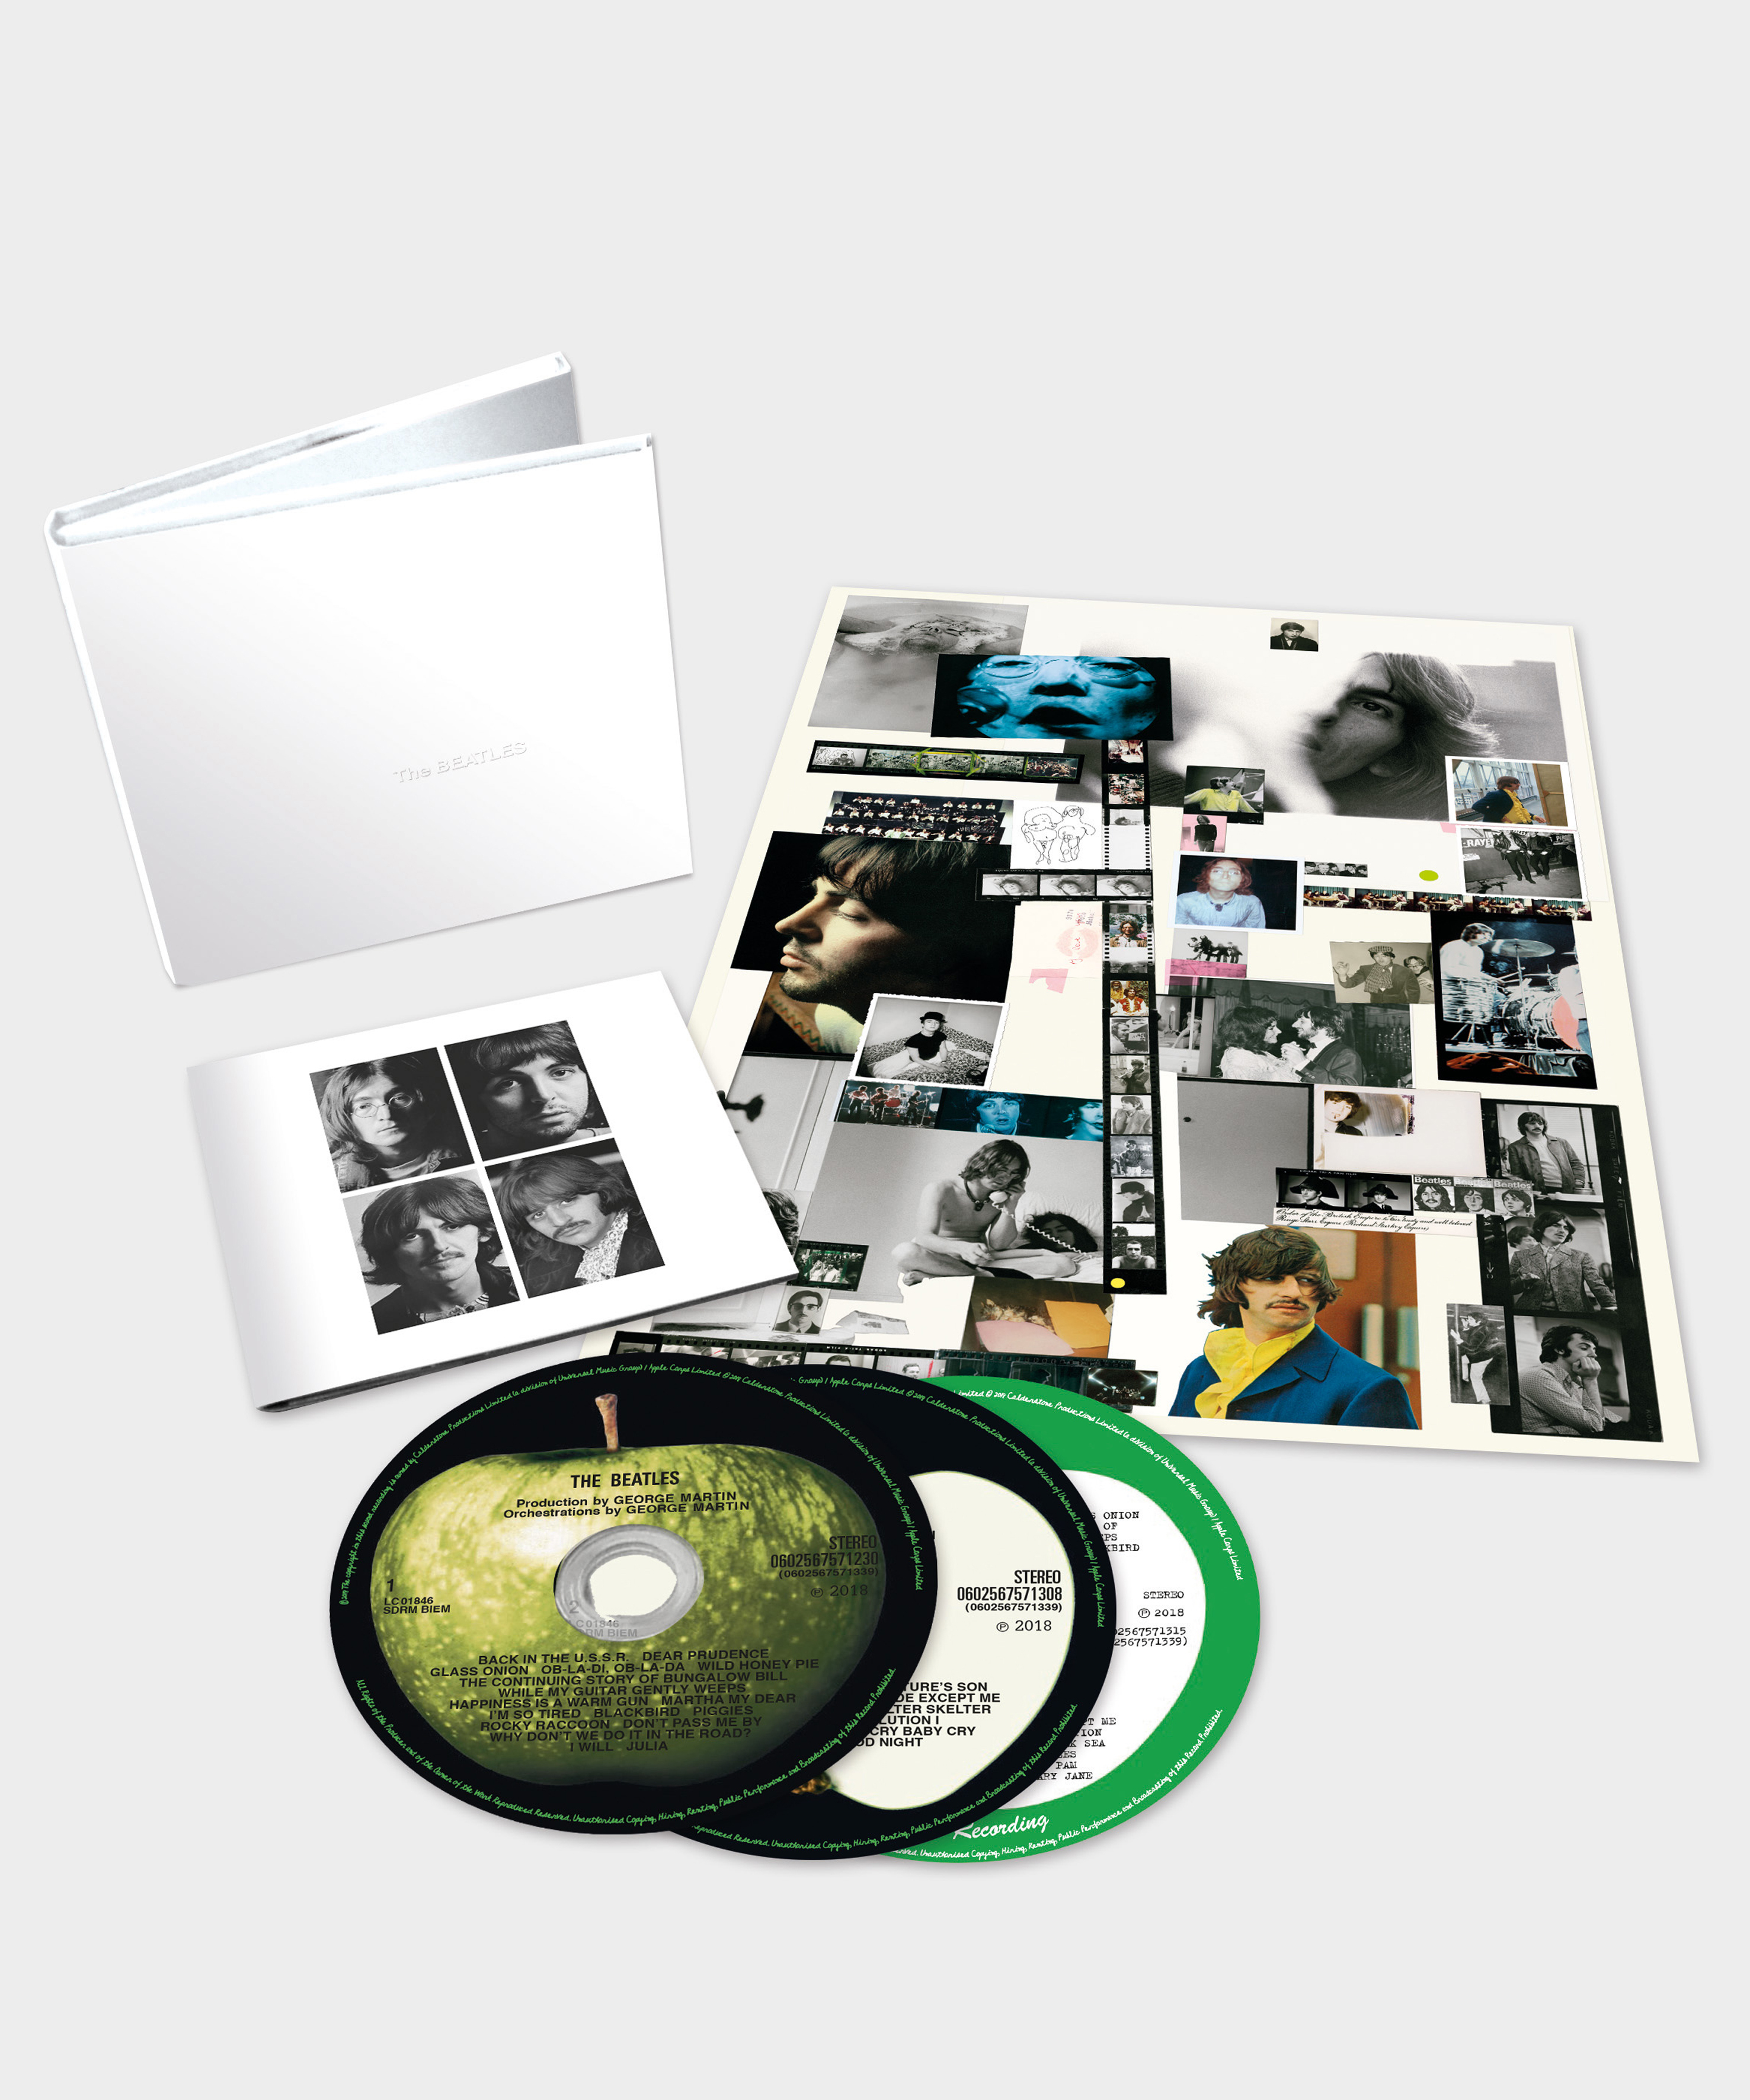 Order your copy of the White Album